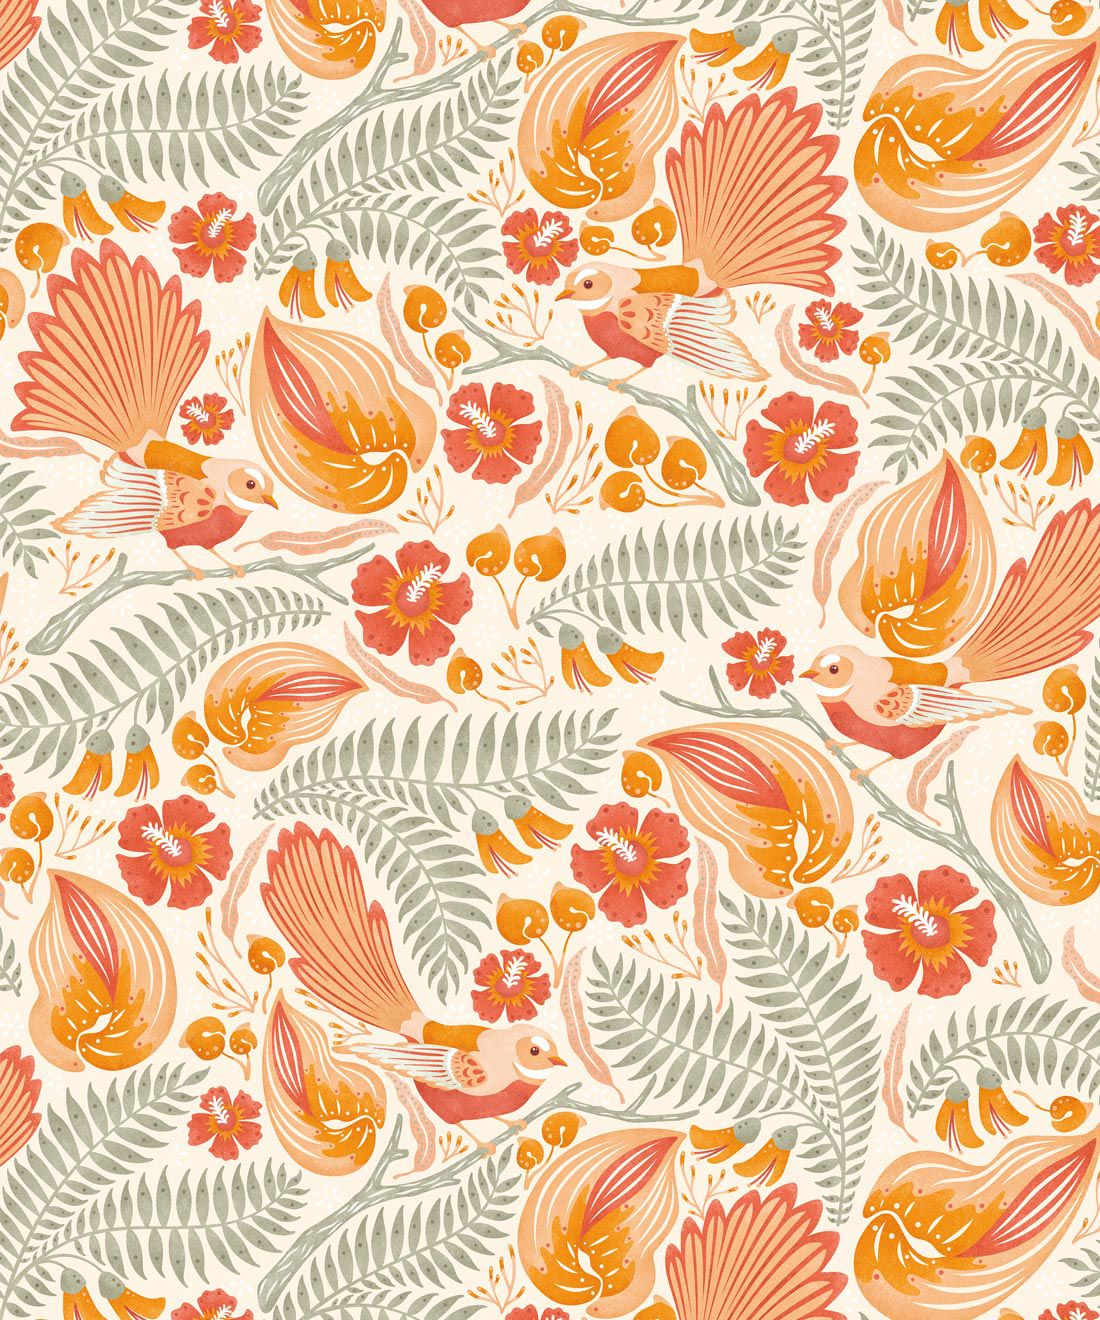 Faintails Wallpaper • New Zealand • Bird Wallpaper • Kowhai Tree • Kowhai Flowers • Orange Wallpaper • Light Colorway